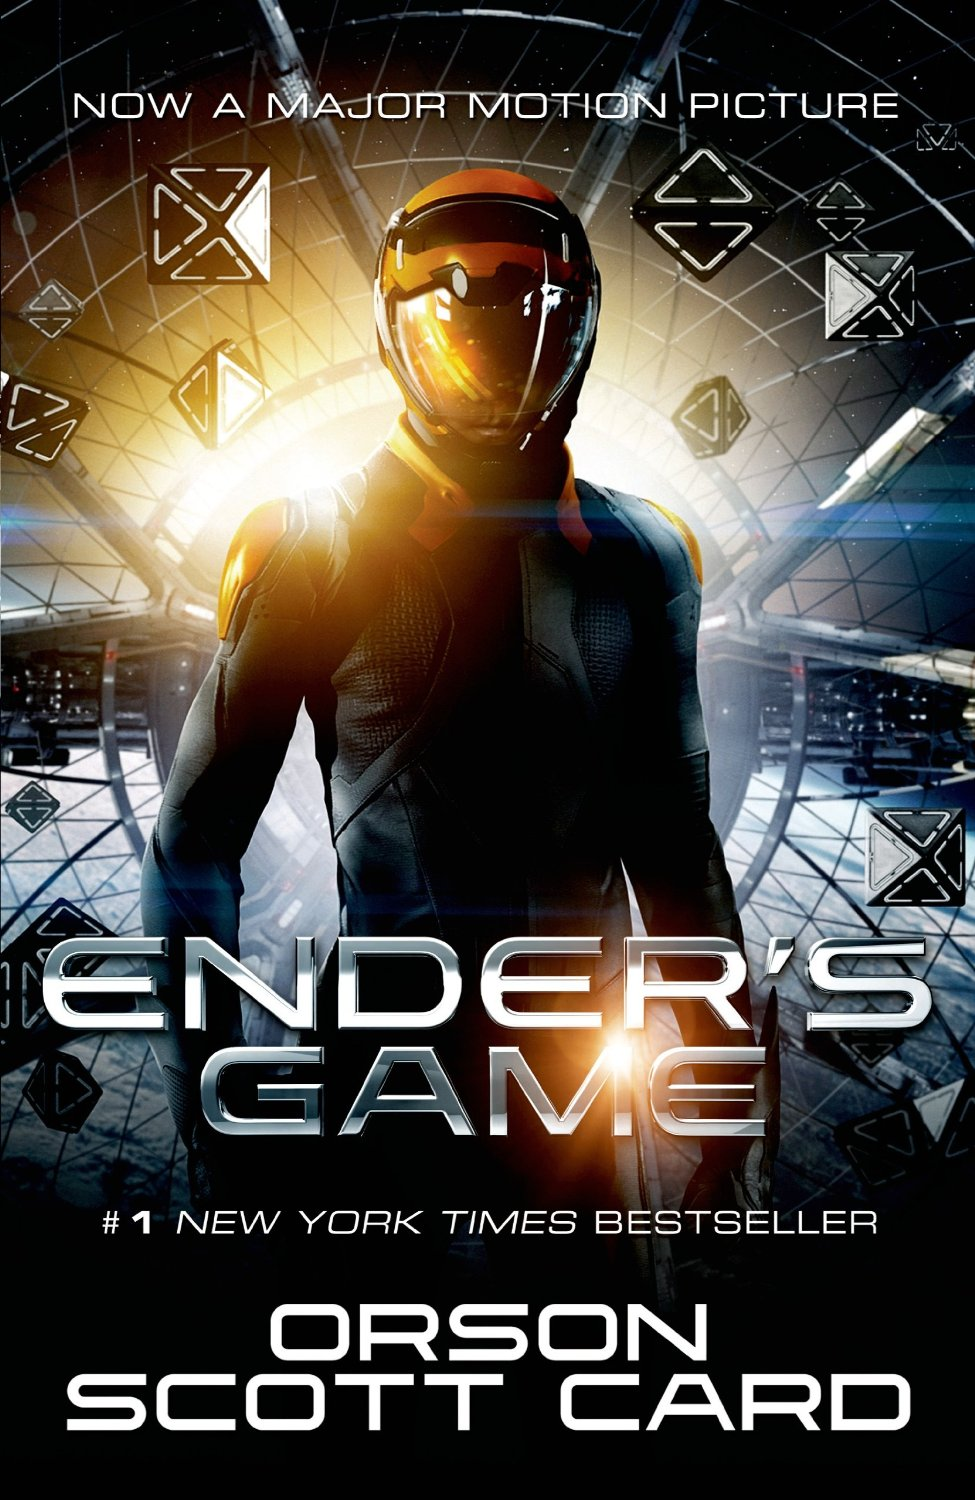 enders game From a general summary to chapter summaries to explanations of famous quotes, the sparknotes ender's game study guide has everything you need to ace quizzes, tests, and essays.